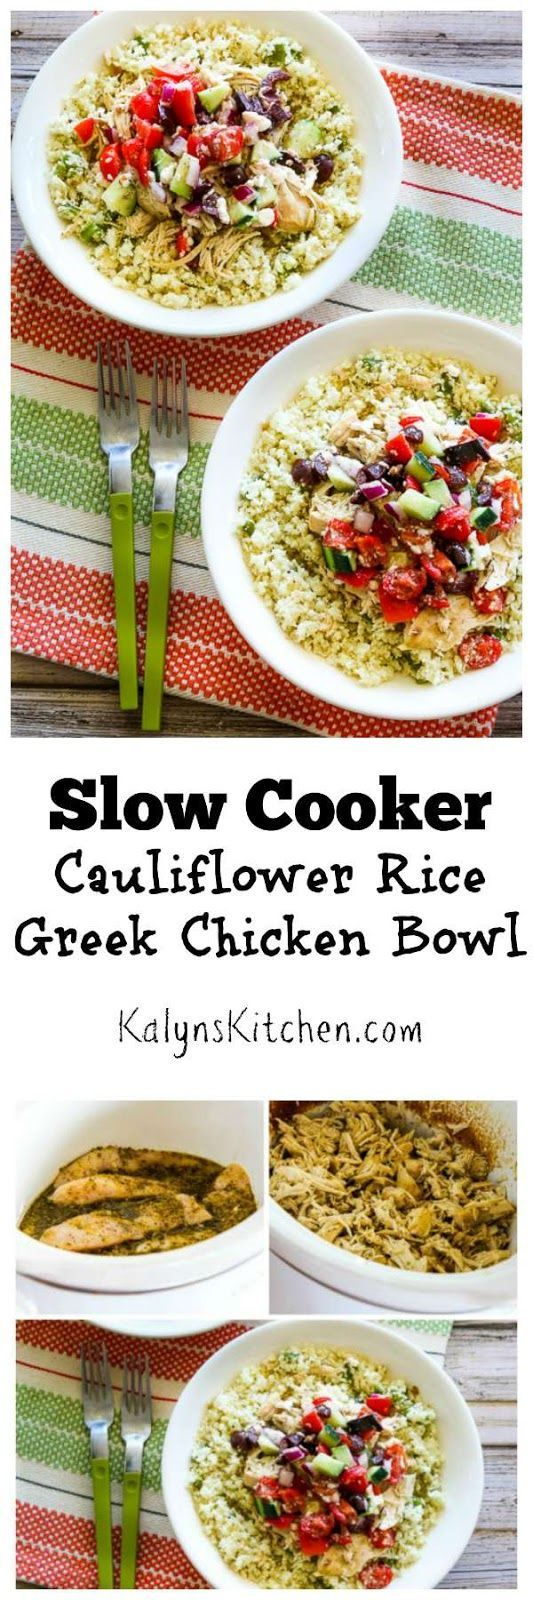 In this Slow Cooker Cauliflower Rice Greek Chicken Bowl shredded slow cooker Greek lemon chicken is served over cauliflower rice and topped with Greek salsa; so delicious!  (Low-Carb, Gluten-Free, Can Be Paleo) | [from KalynsKitchen.com]